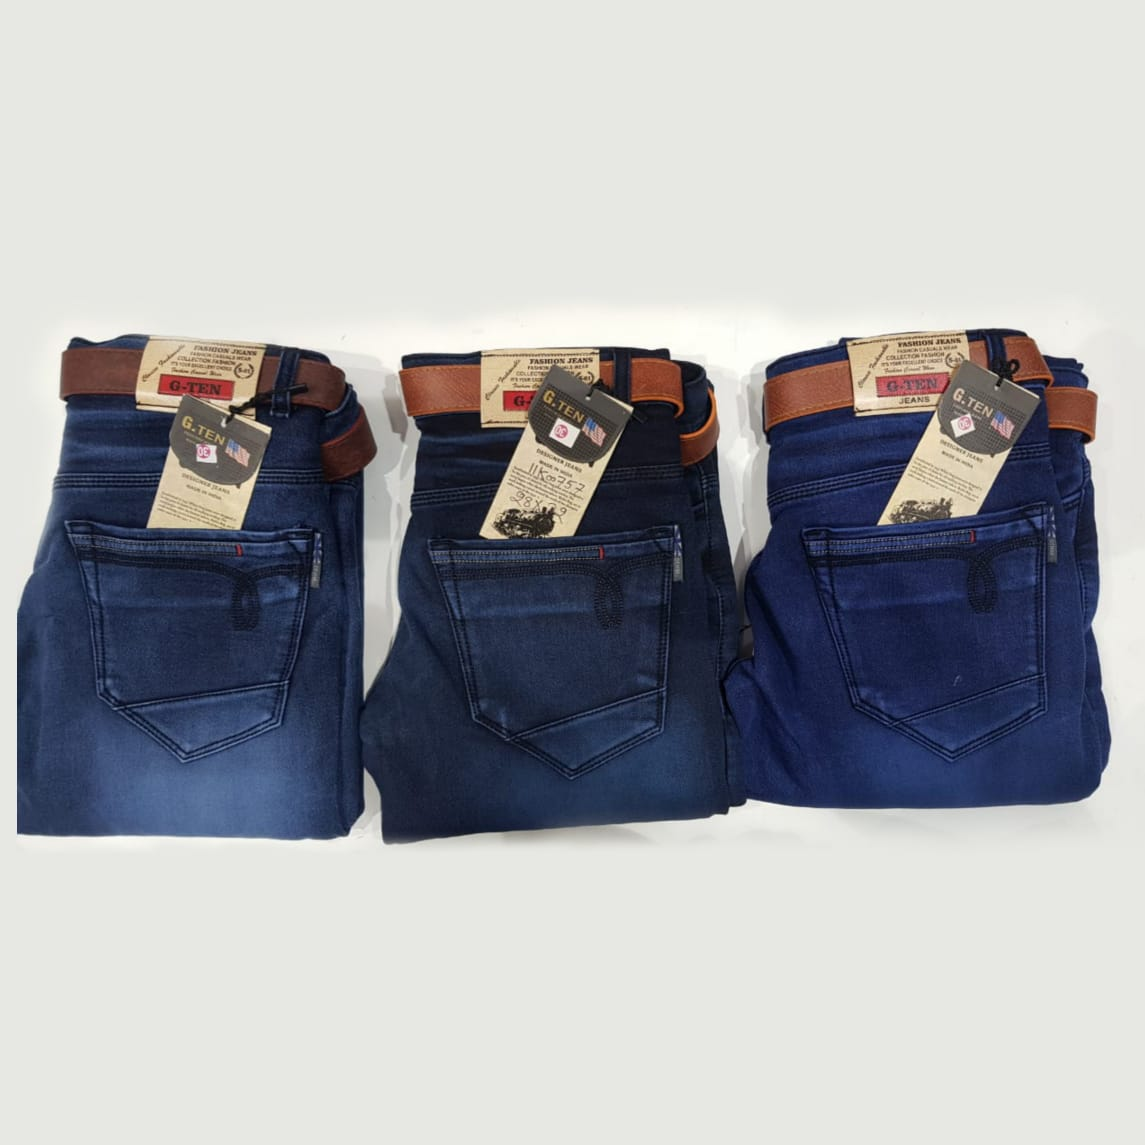 payal jeans wholesale distributor and manufacturer